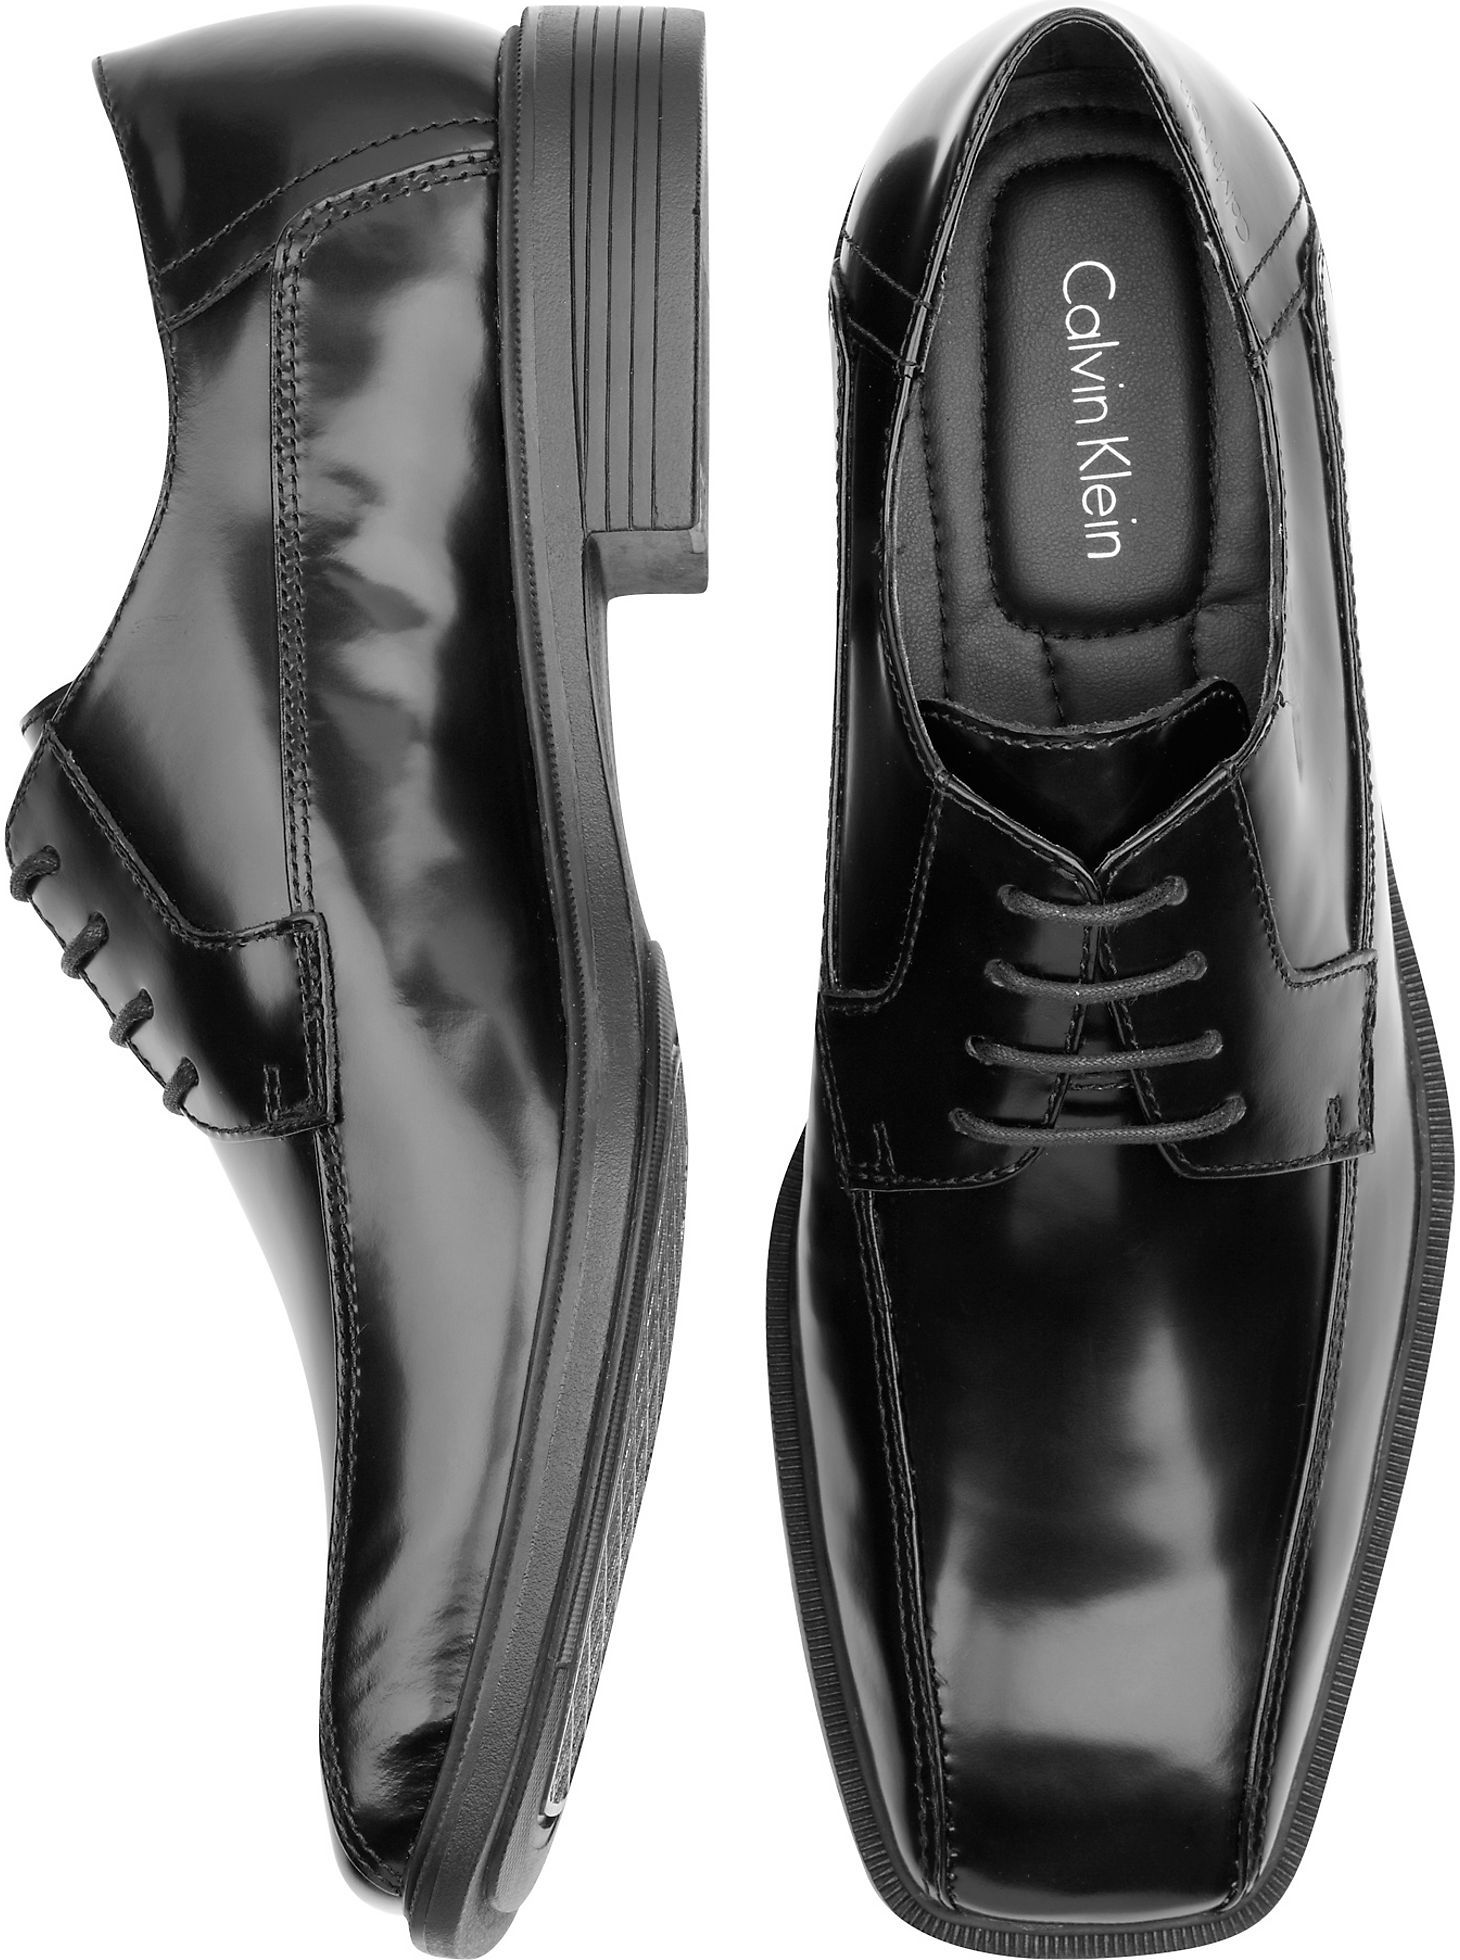 A Good Pair Of Black Laced Dress Shoes Will Go With Most Colors And Patterns And Not Make You Look Like A Fr Lace Dress Shoes Dress Shoes Men Mens Shoes [ 1960 x 1460 Pixel ]